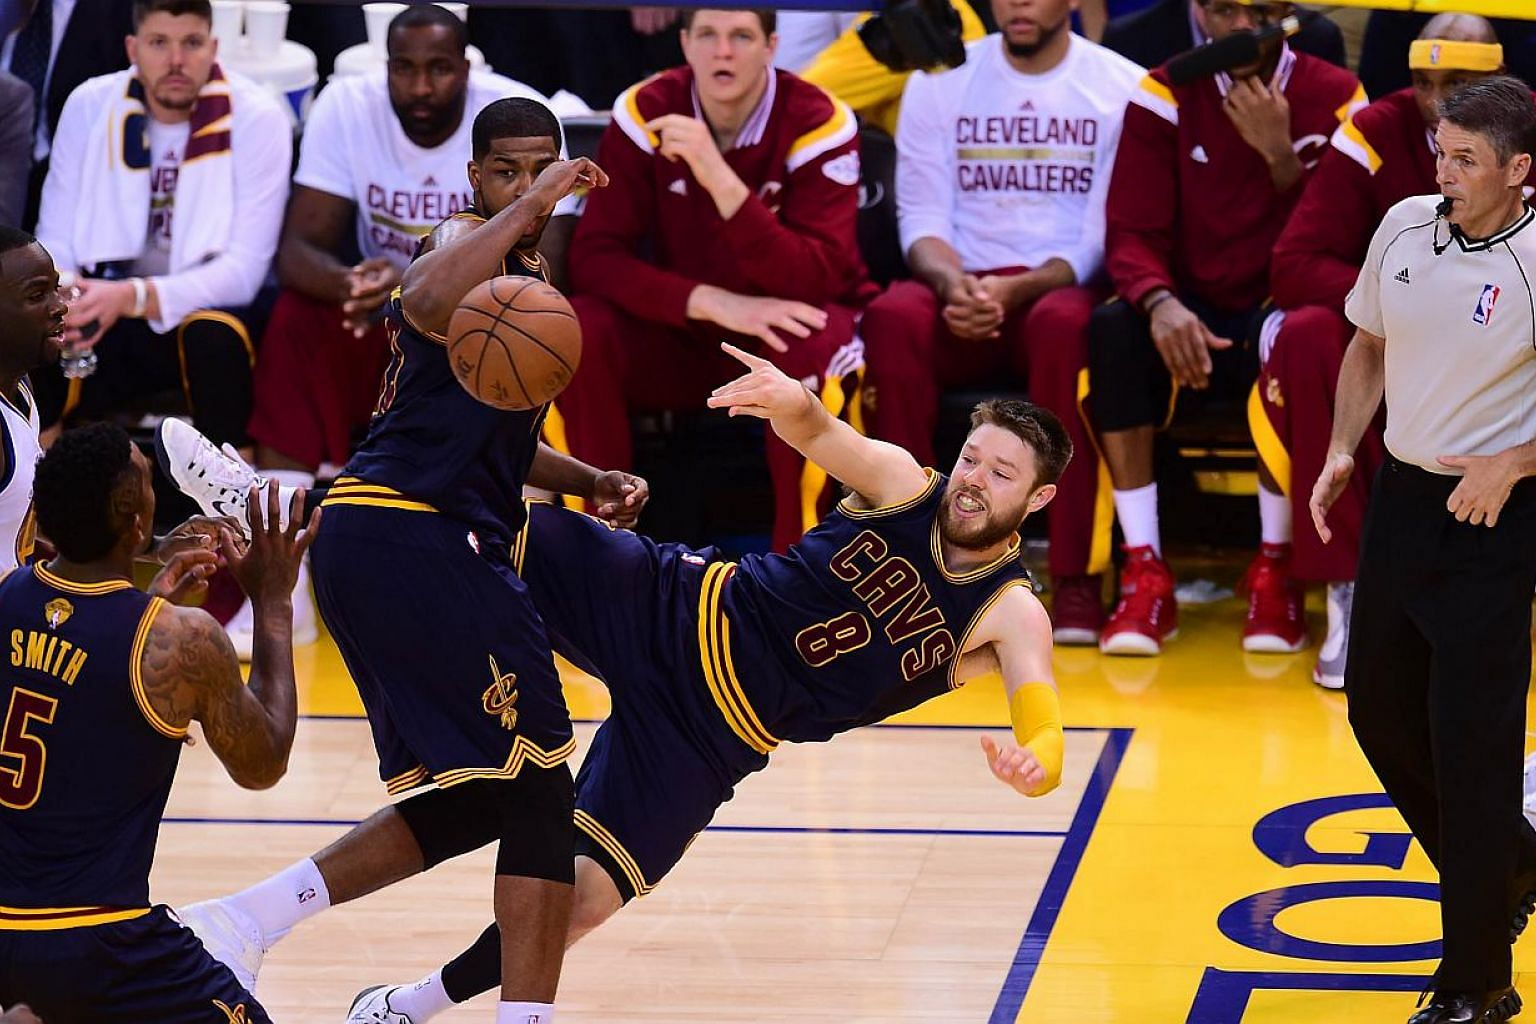 Matthew Dellavedova goes horizontal for the Cleveland Cavaliers against the Golden State Warriors during Game 2 of the 2015 NBA Finals on June 7, 2015 in Oakland, California. -- PHOTO: AFP